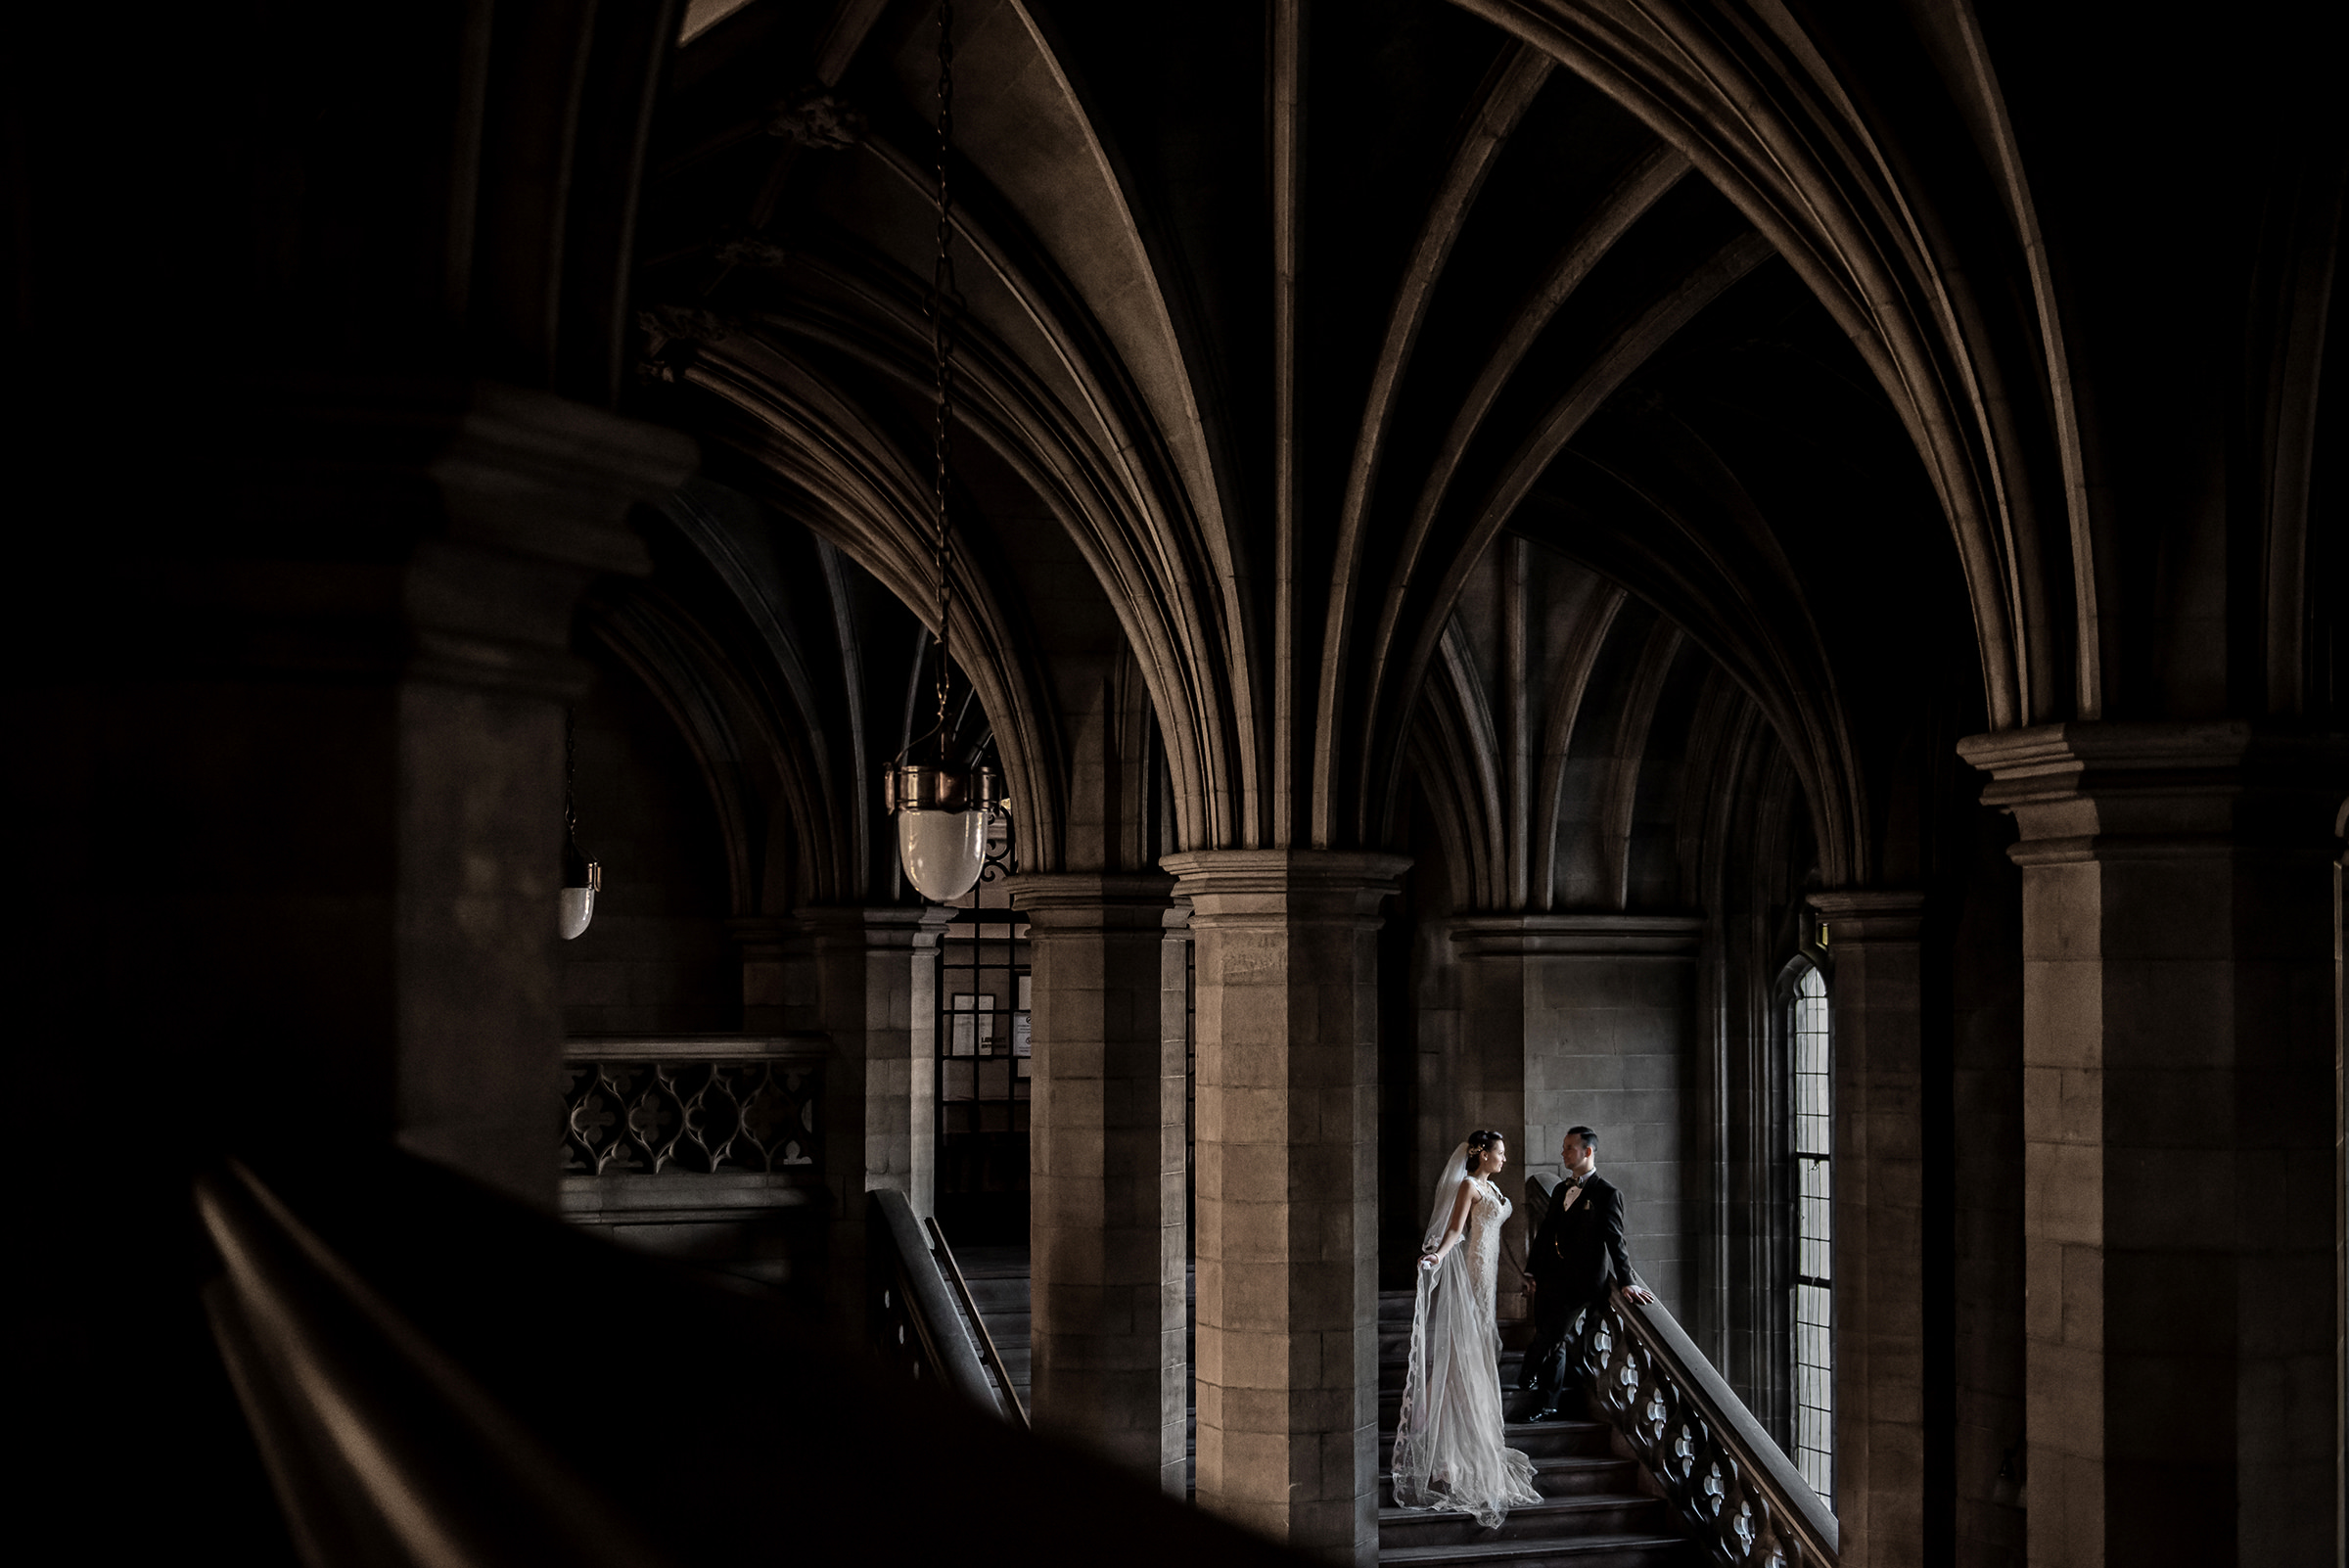 University of Toronto wedding portrait on stairs by David and Sherry Photography